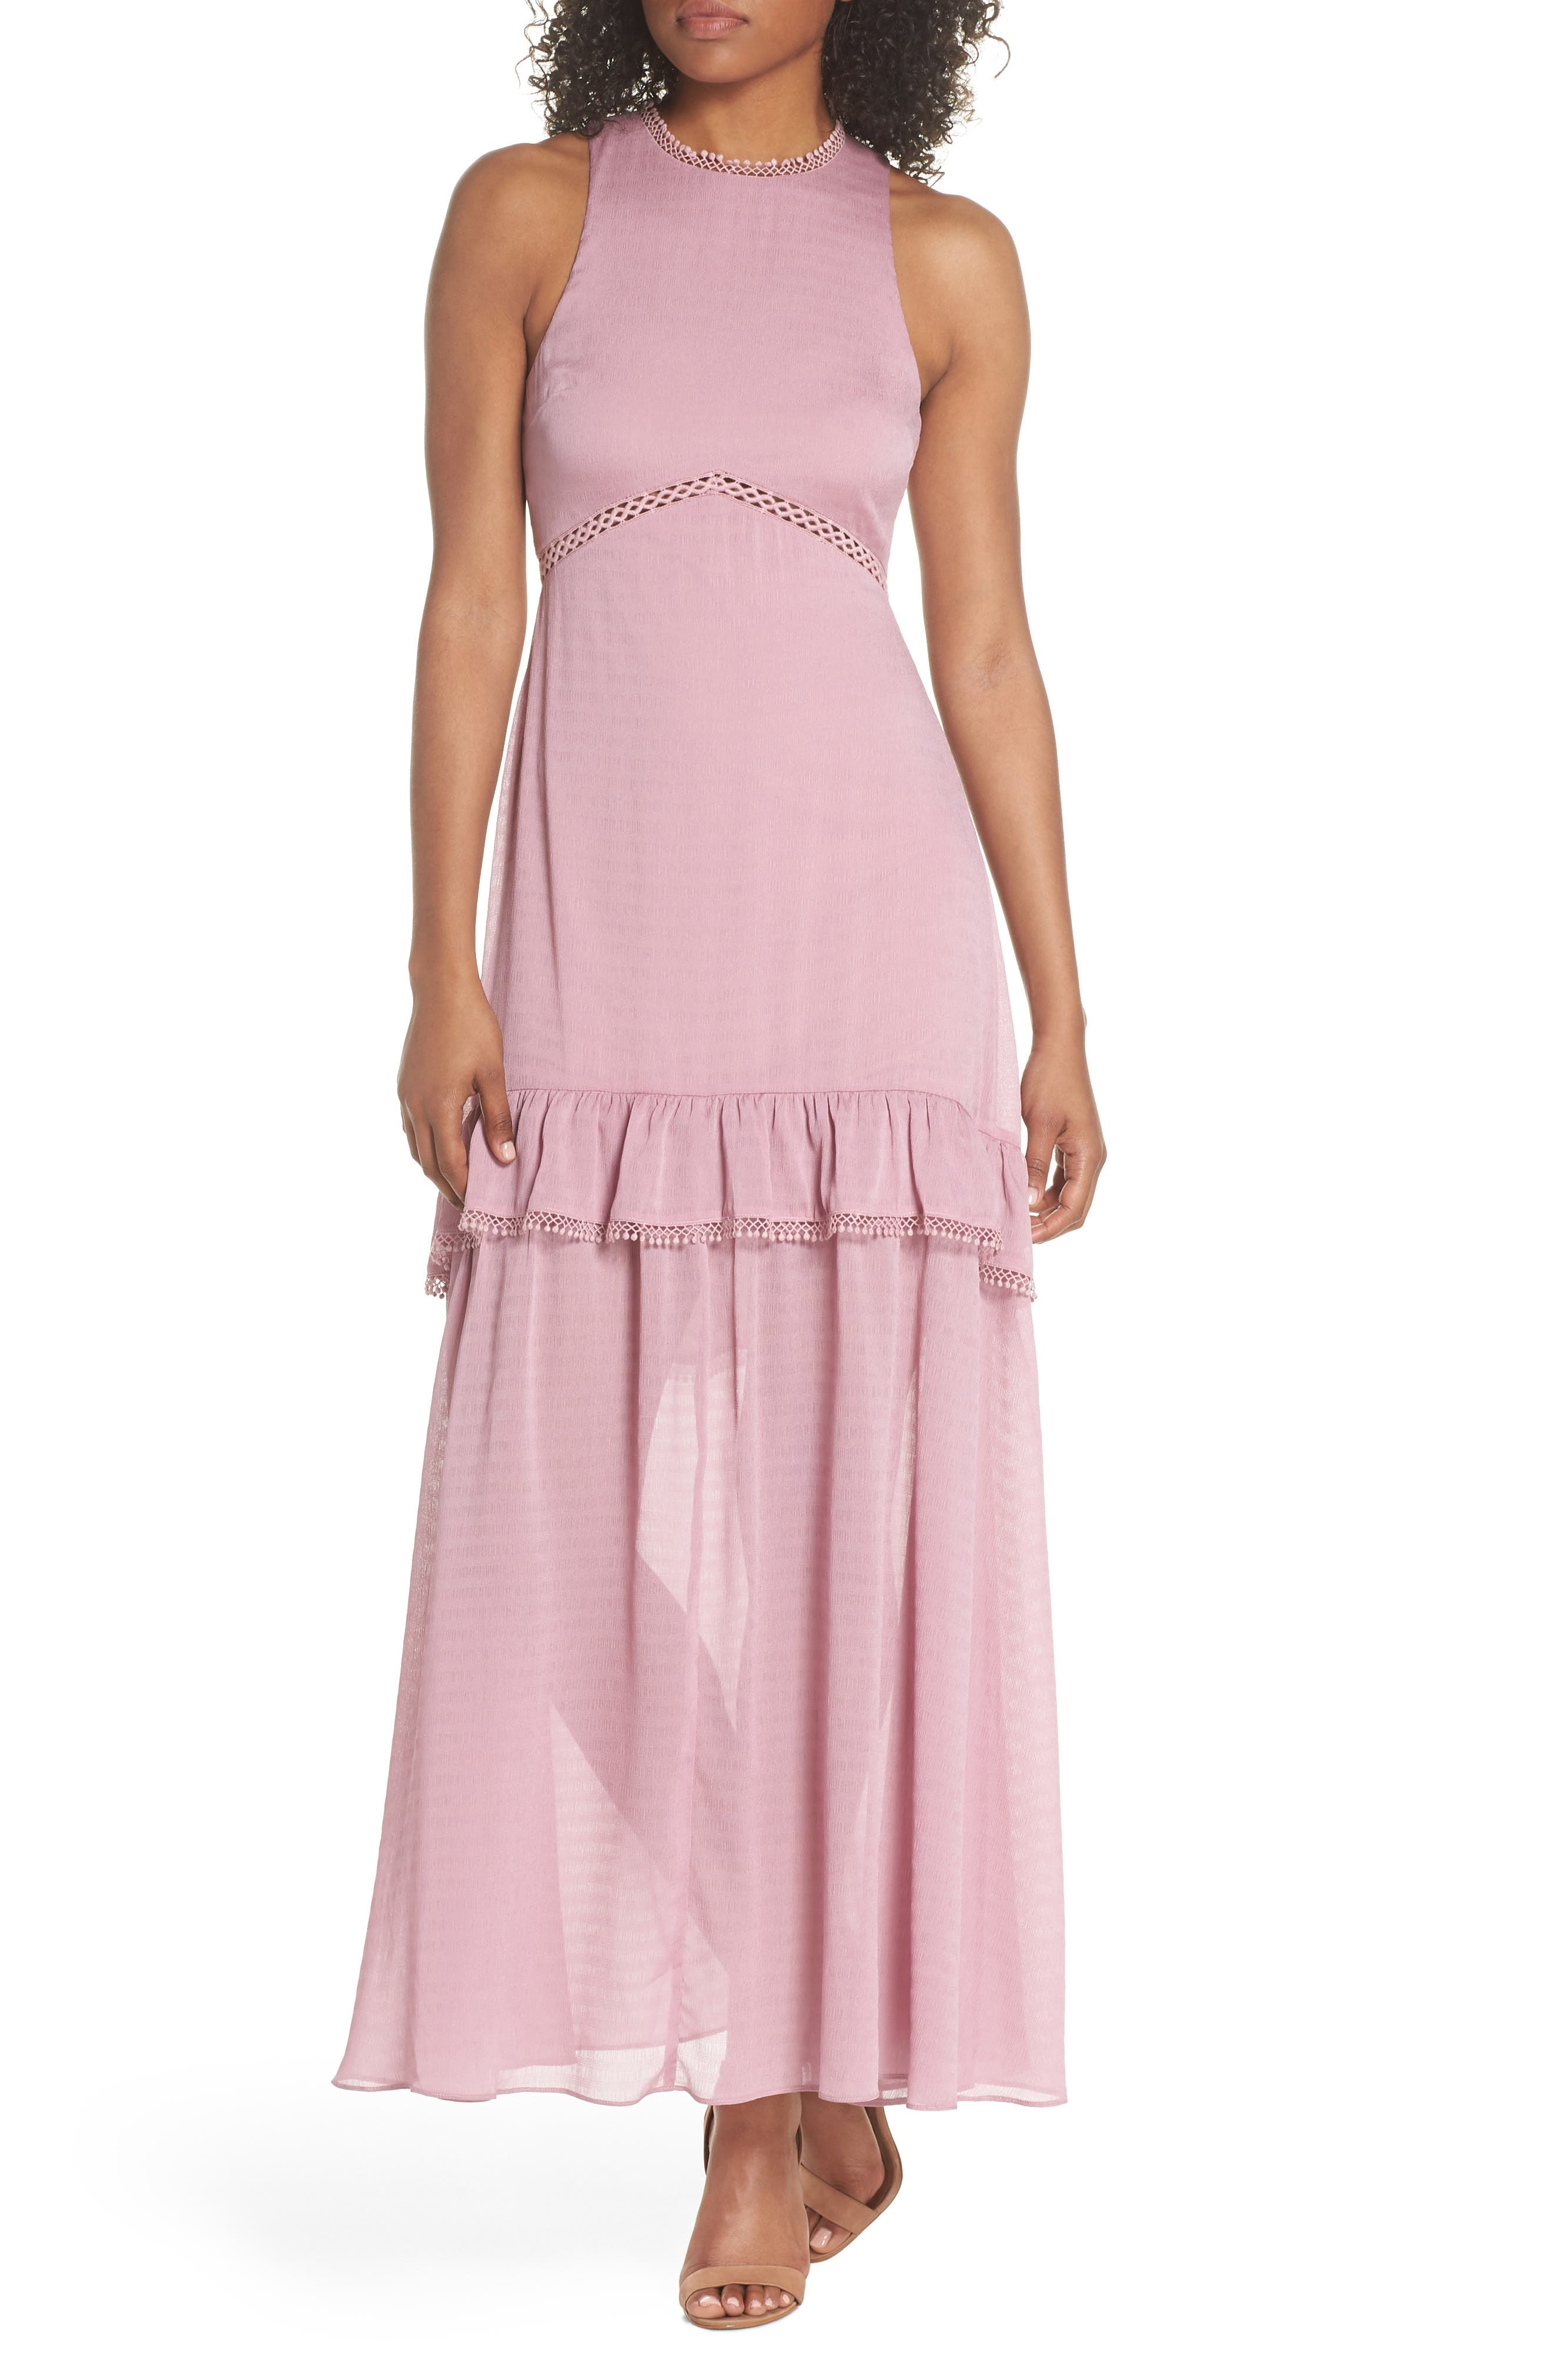 NSR Sleeveless Ruffle Maxi Dress